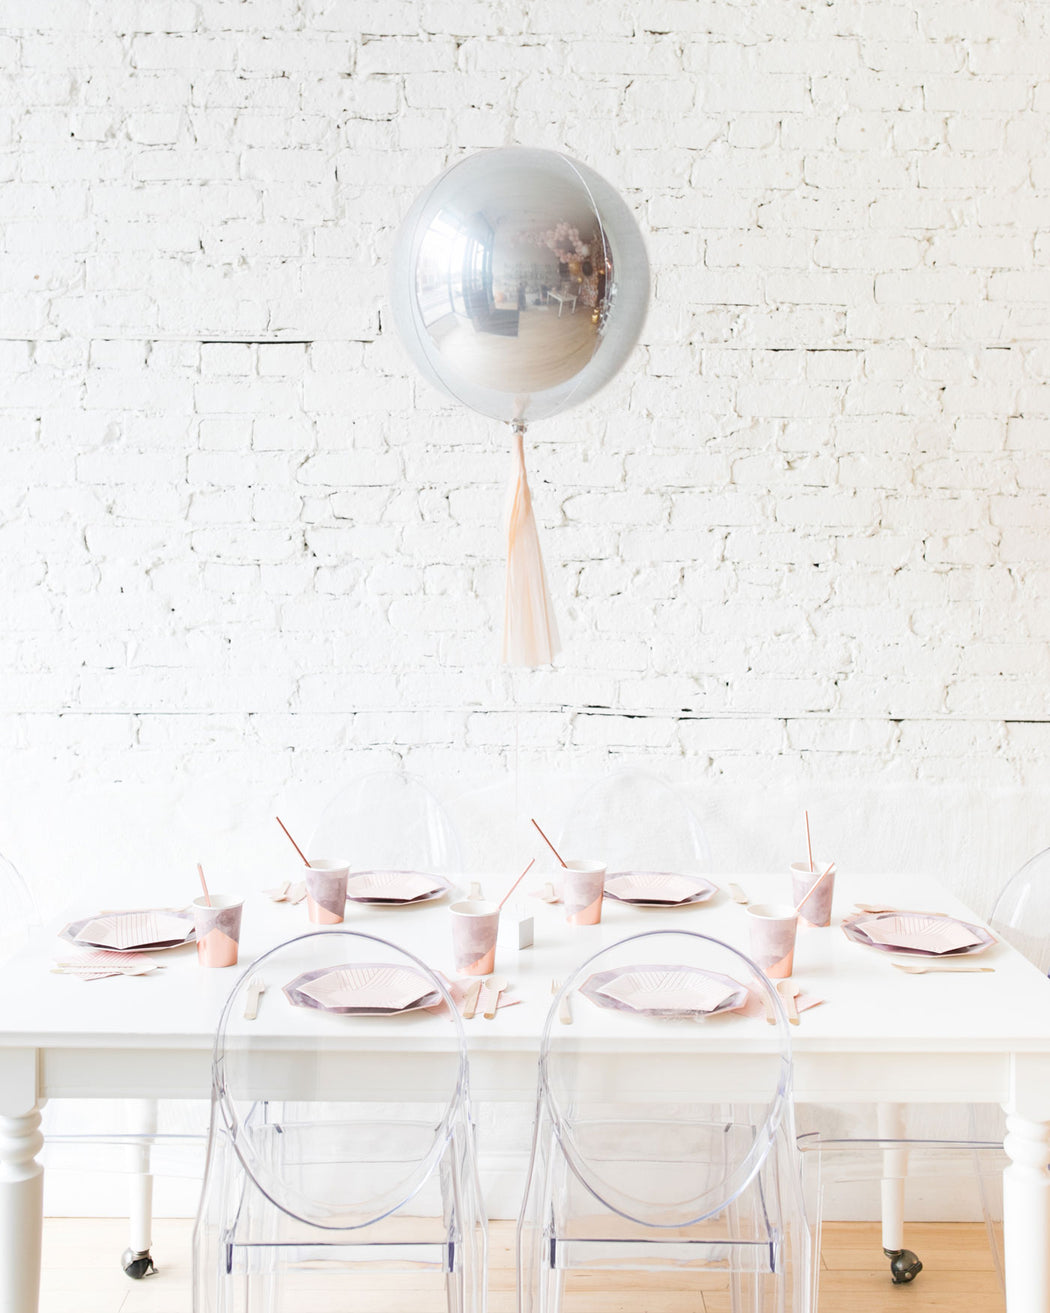 16in Silver Orb Foil Balloon and Blush Skirt Centerpiece